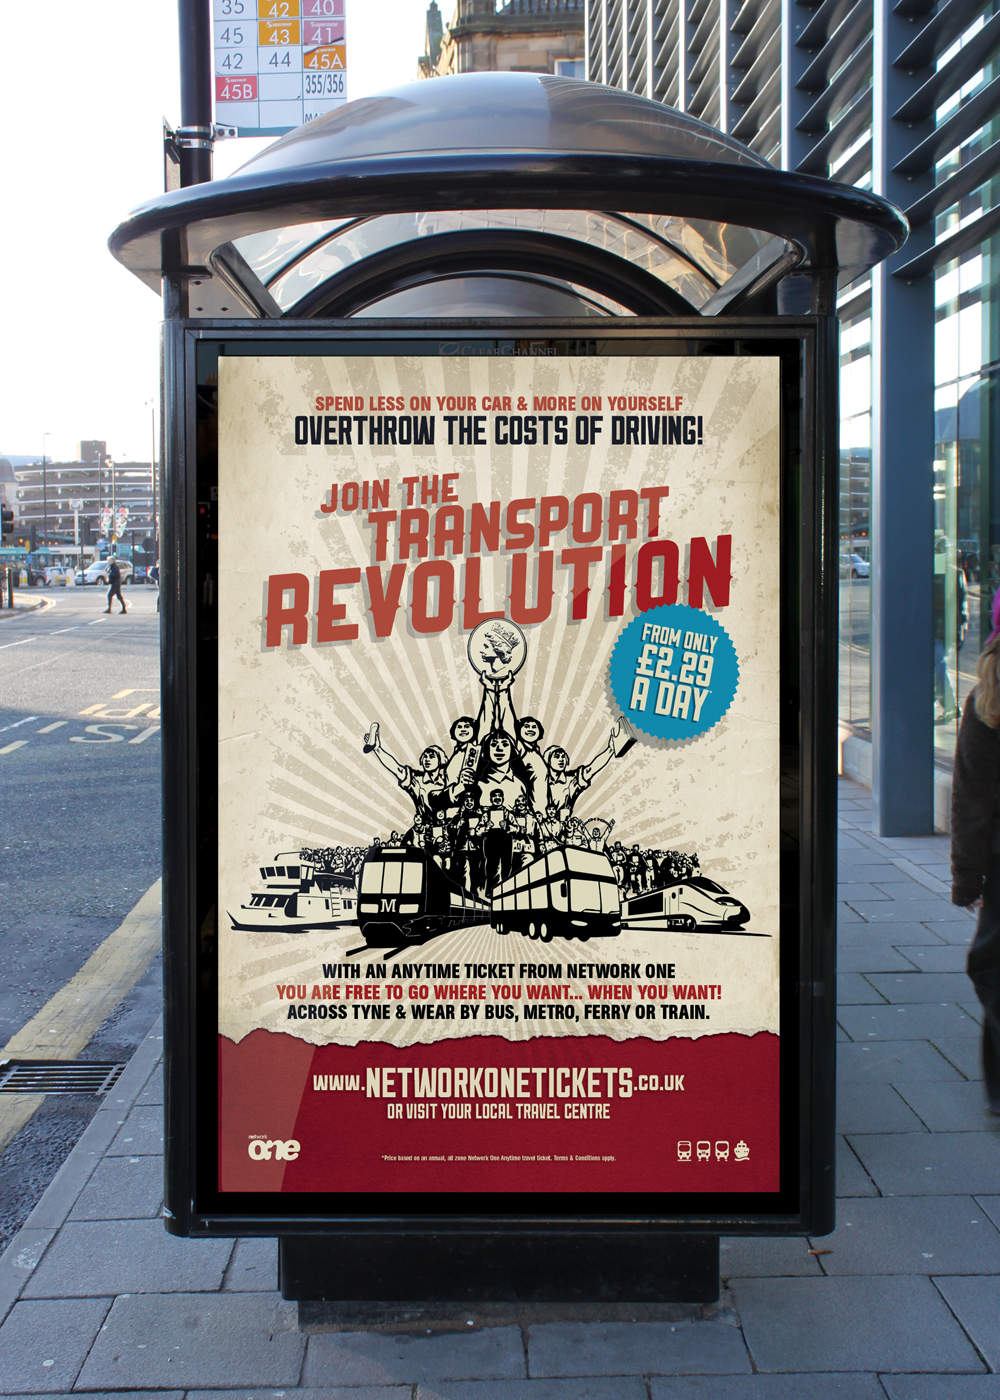 Join The Transport Revolution poster advertisement